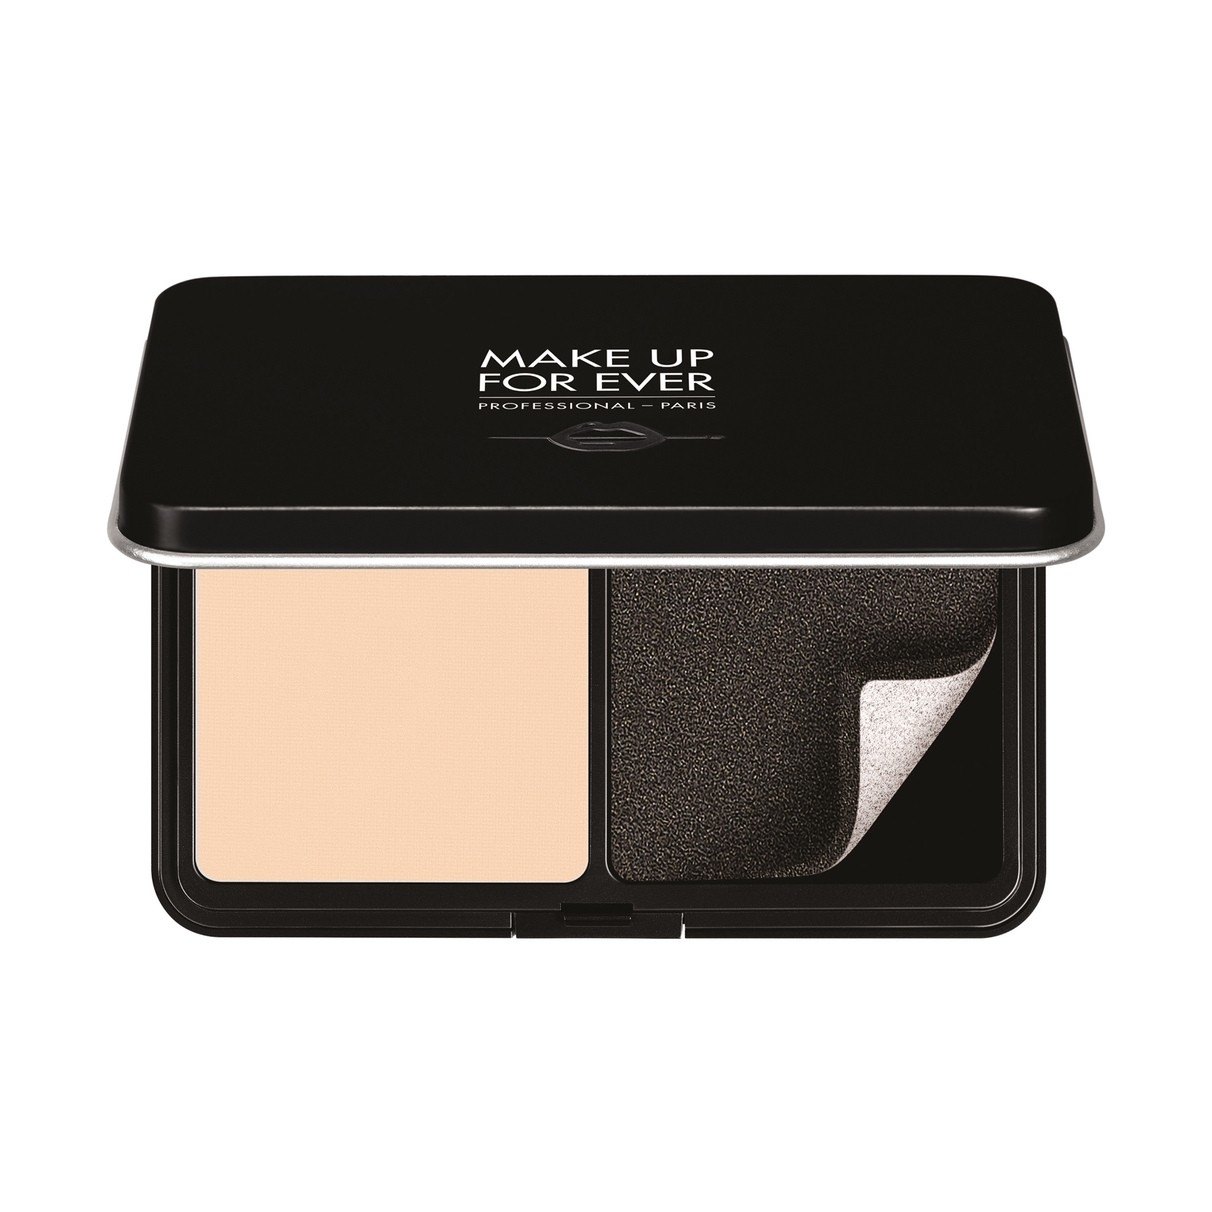 Make Up For Ever Matte Velvet Skin Powder Foundation R210